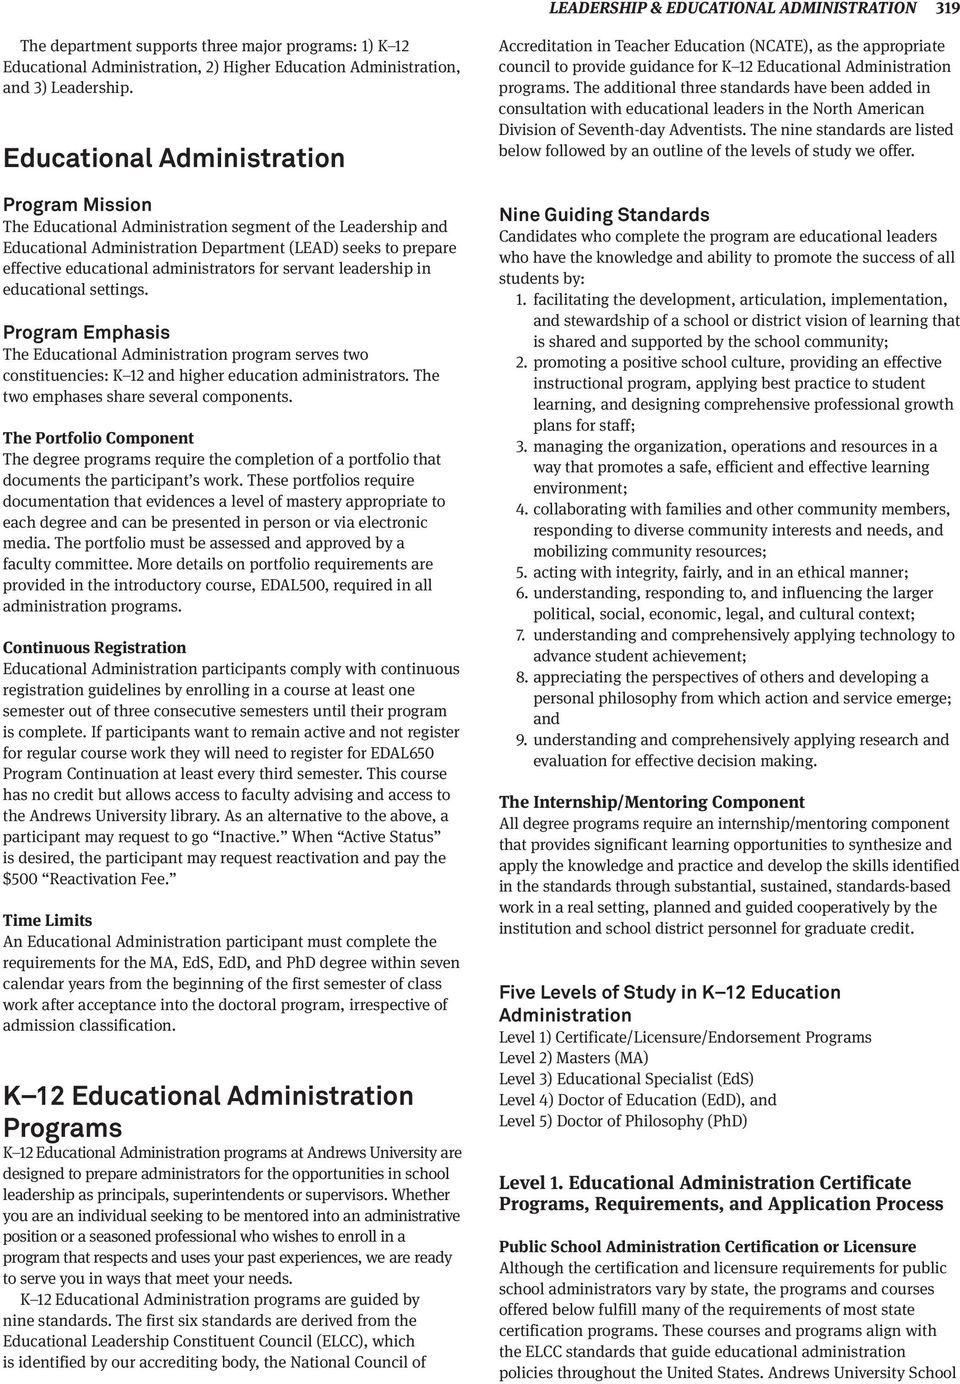 administrators for servant leadership in educational settings. Program Emphasis The Educational Administration program serves two constituencies: K 12 and higher education administrators.